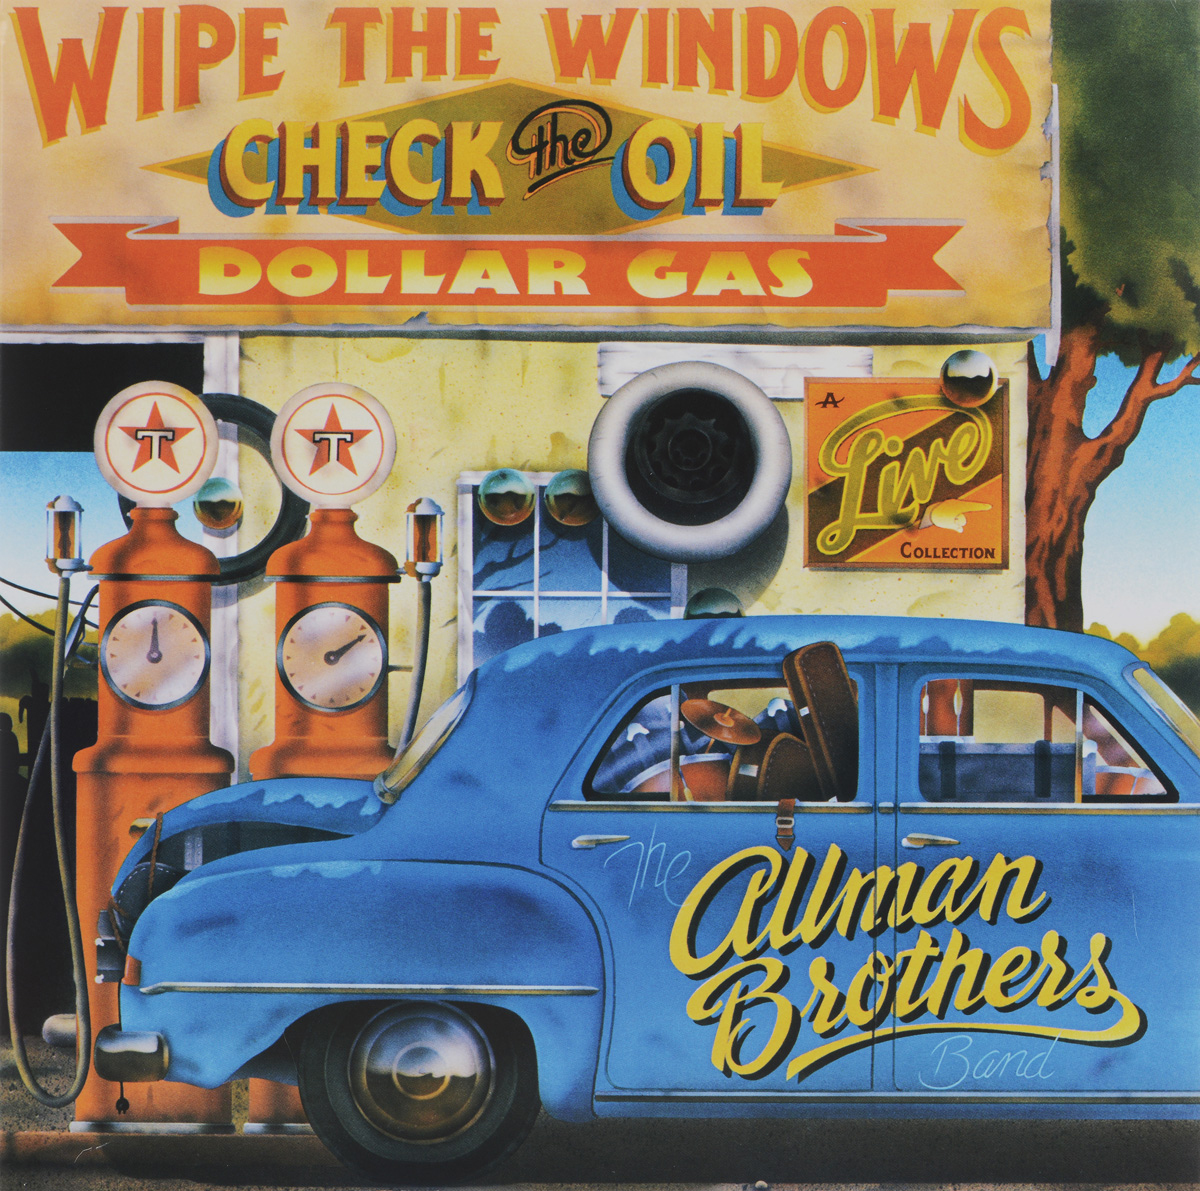 The Allman Brothers Band The Allman Brothers Band. Wipe The Windows, Check The Oil, Dollar Gas (2 LP) the allman brothers band the allman brothers band brothers and sisters lp